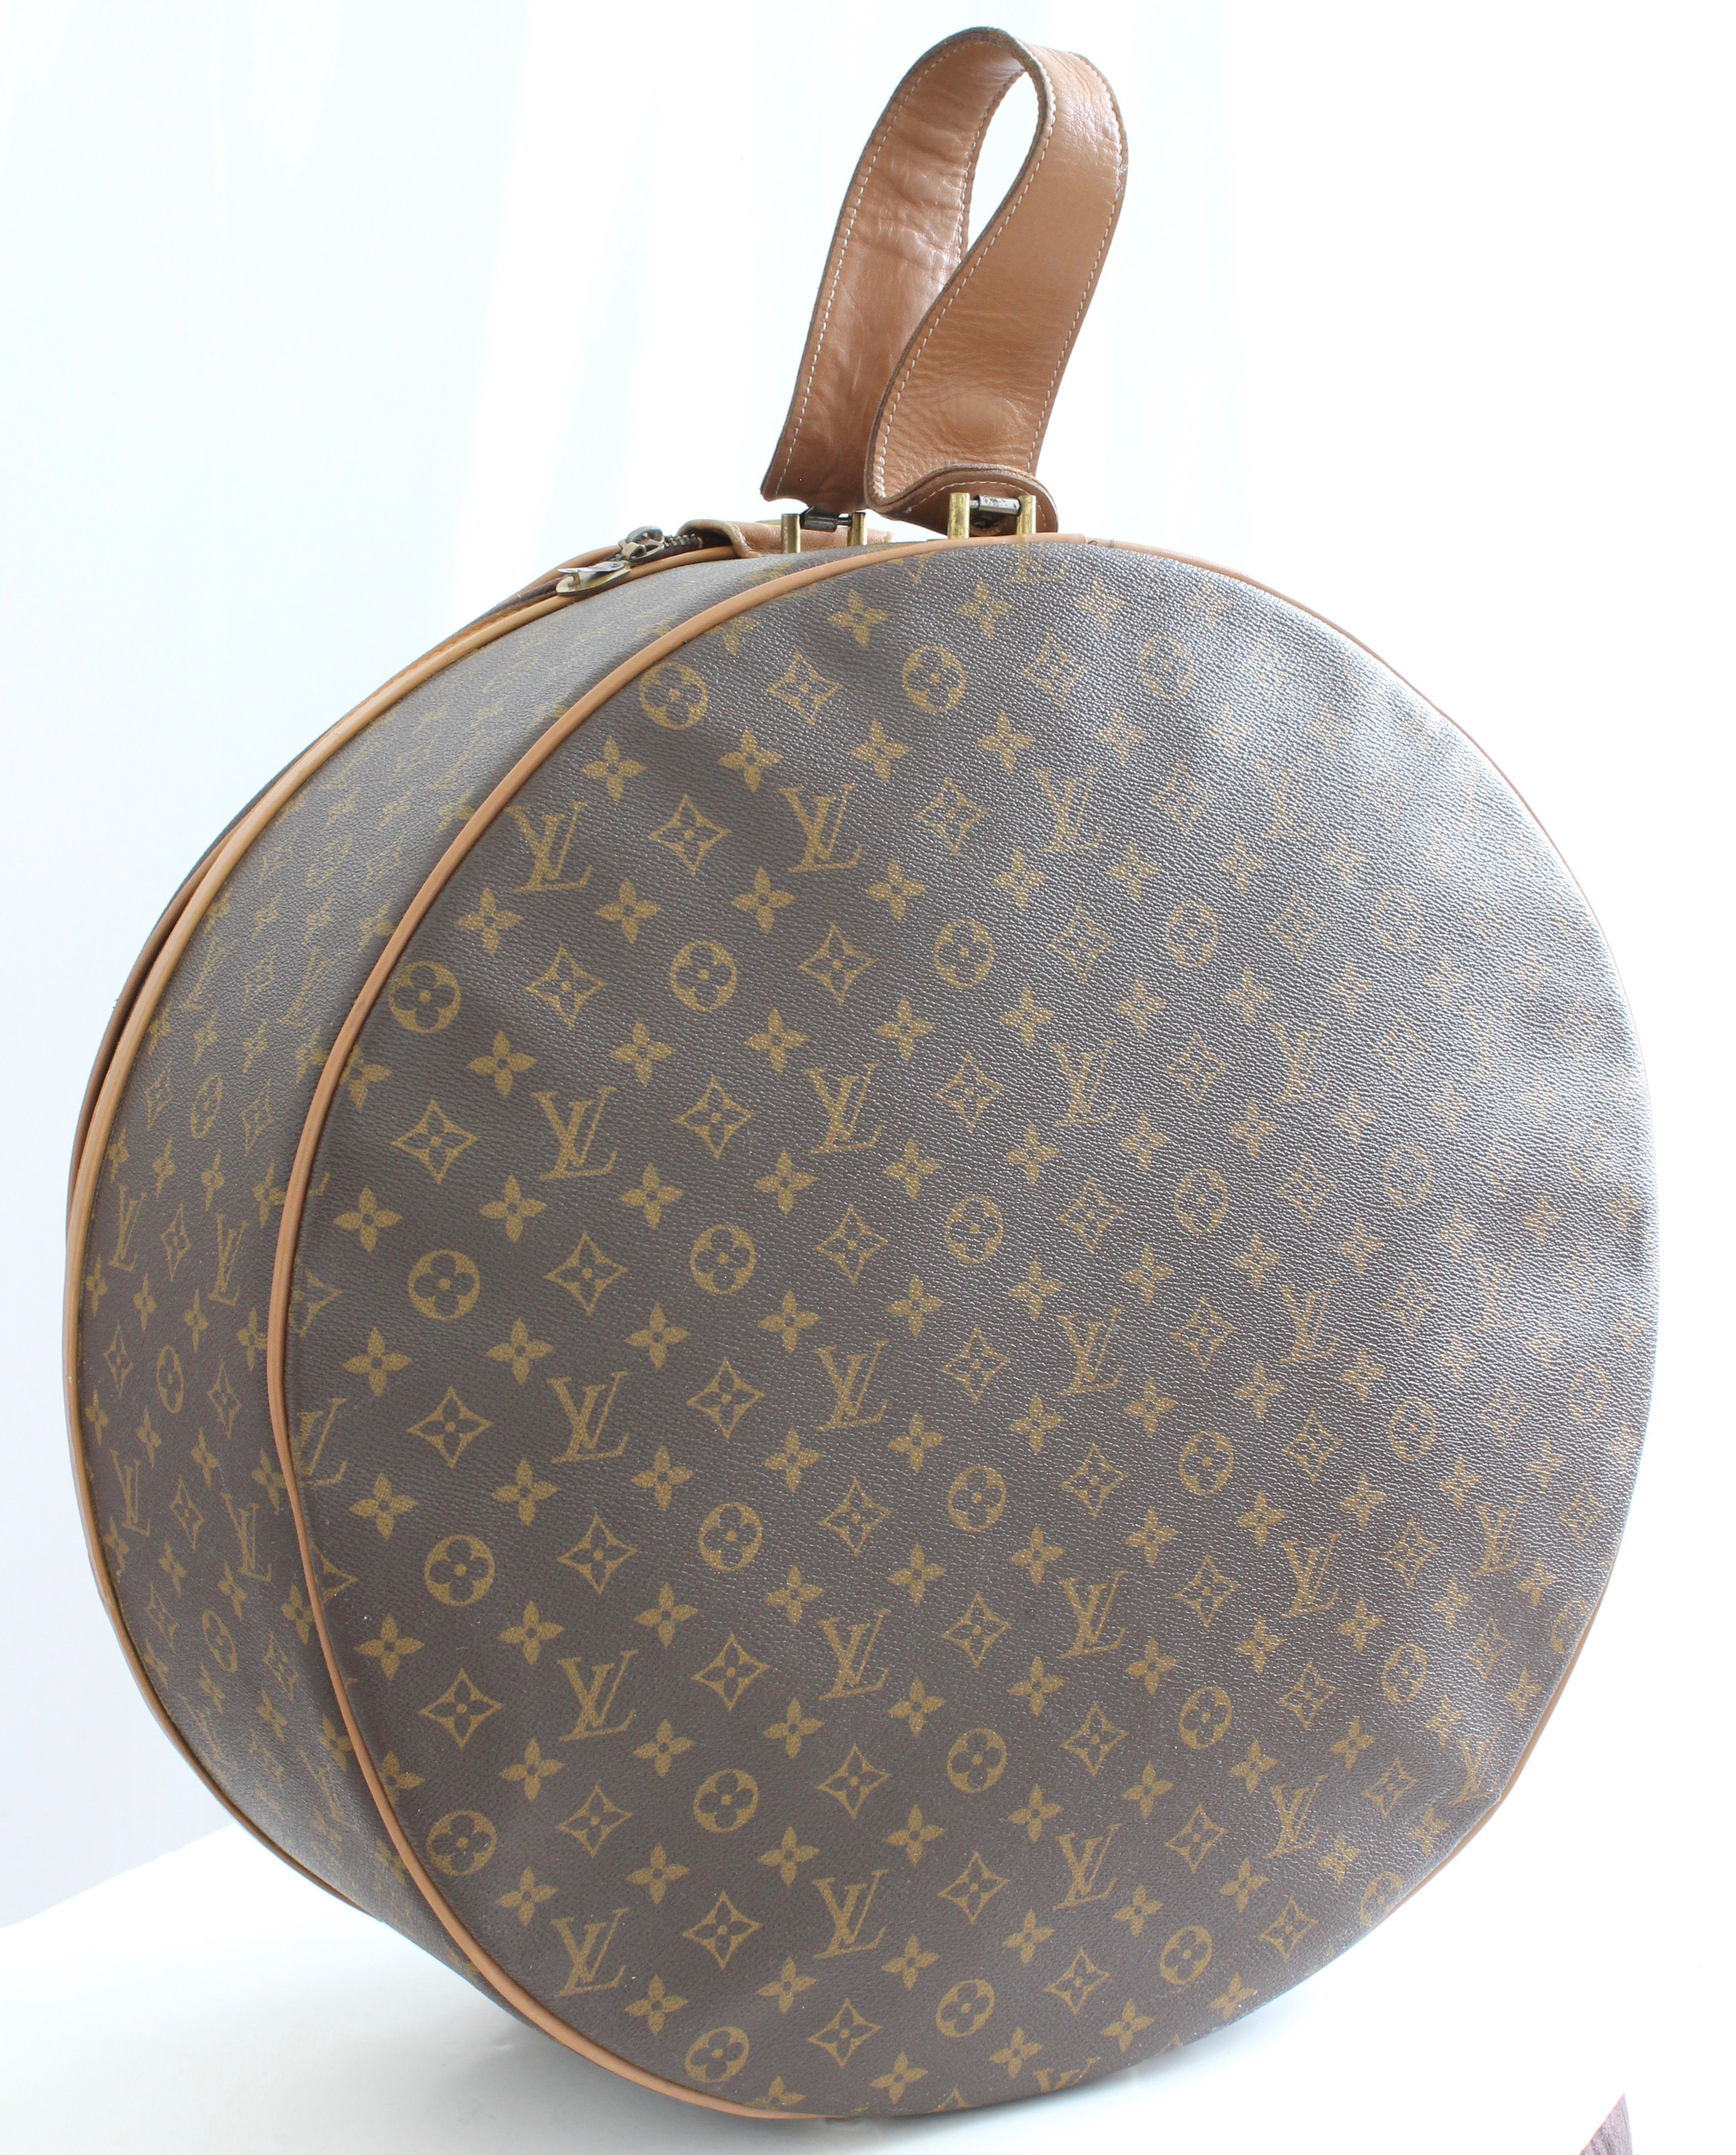 10b681b25999 Louis Vuitton The French Company Boite Chapeaux Round Hat Box 50cm Travel  Bag at 1stdibs